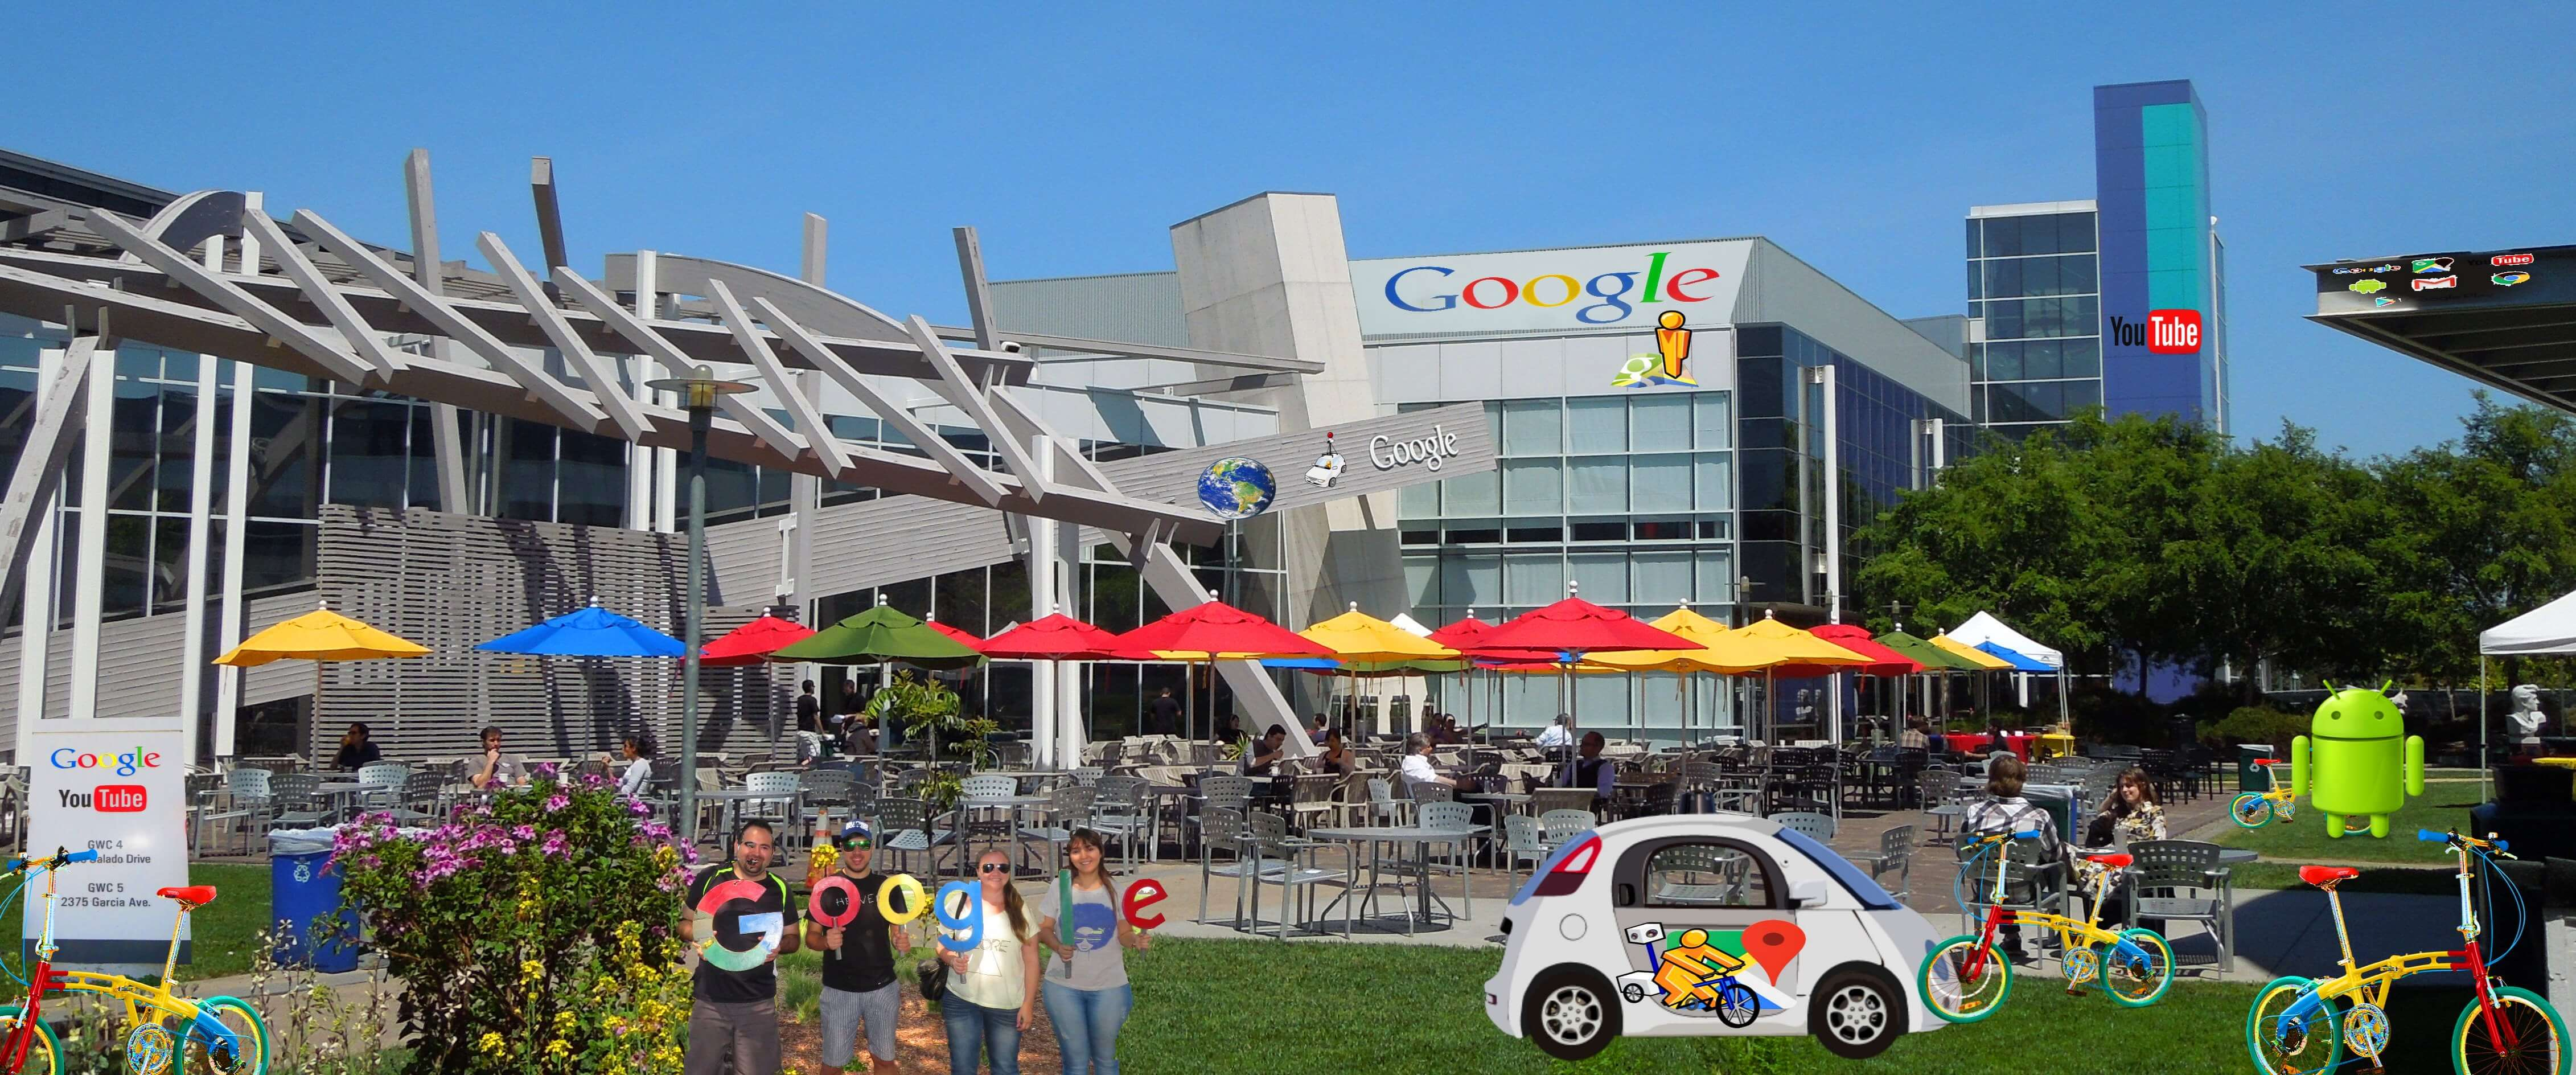 silicon_valley_tech_tours_and_san_jose_tech_museums_from_goolge